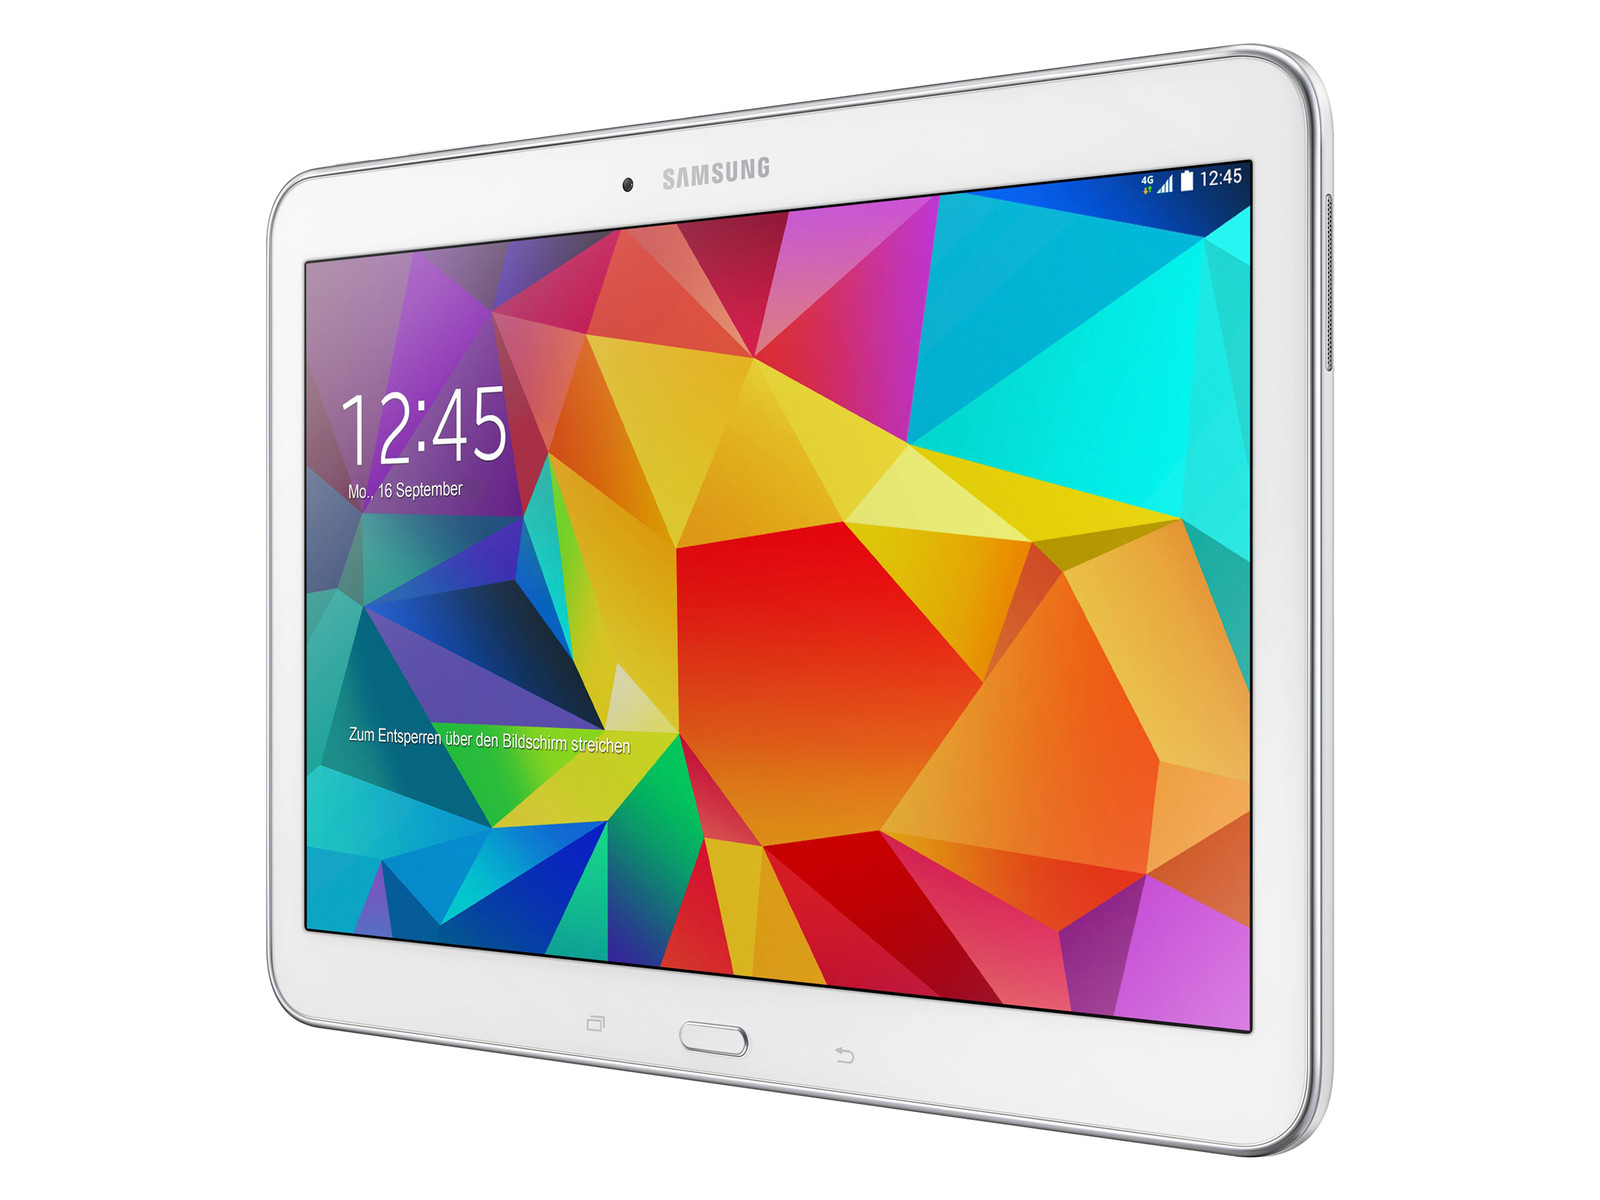 samsung galaxy tab 4 10 1 tablet review   notebookcheck